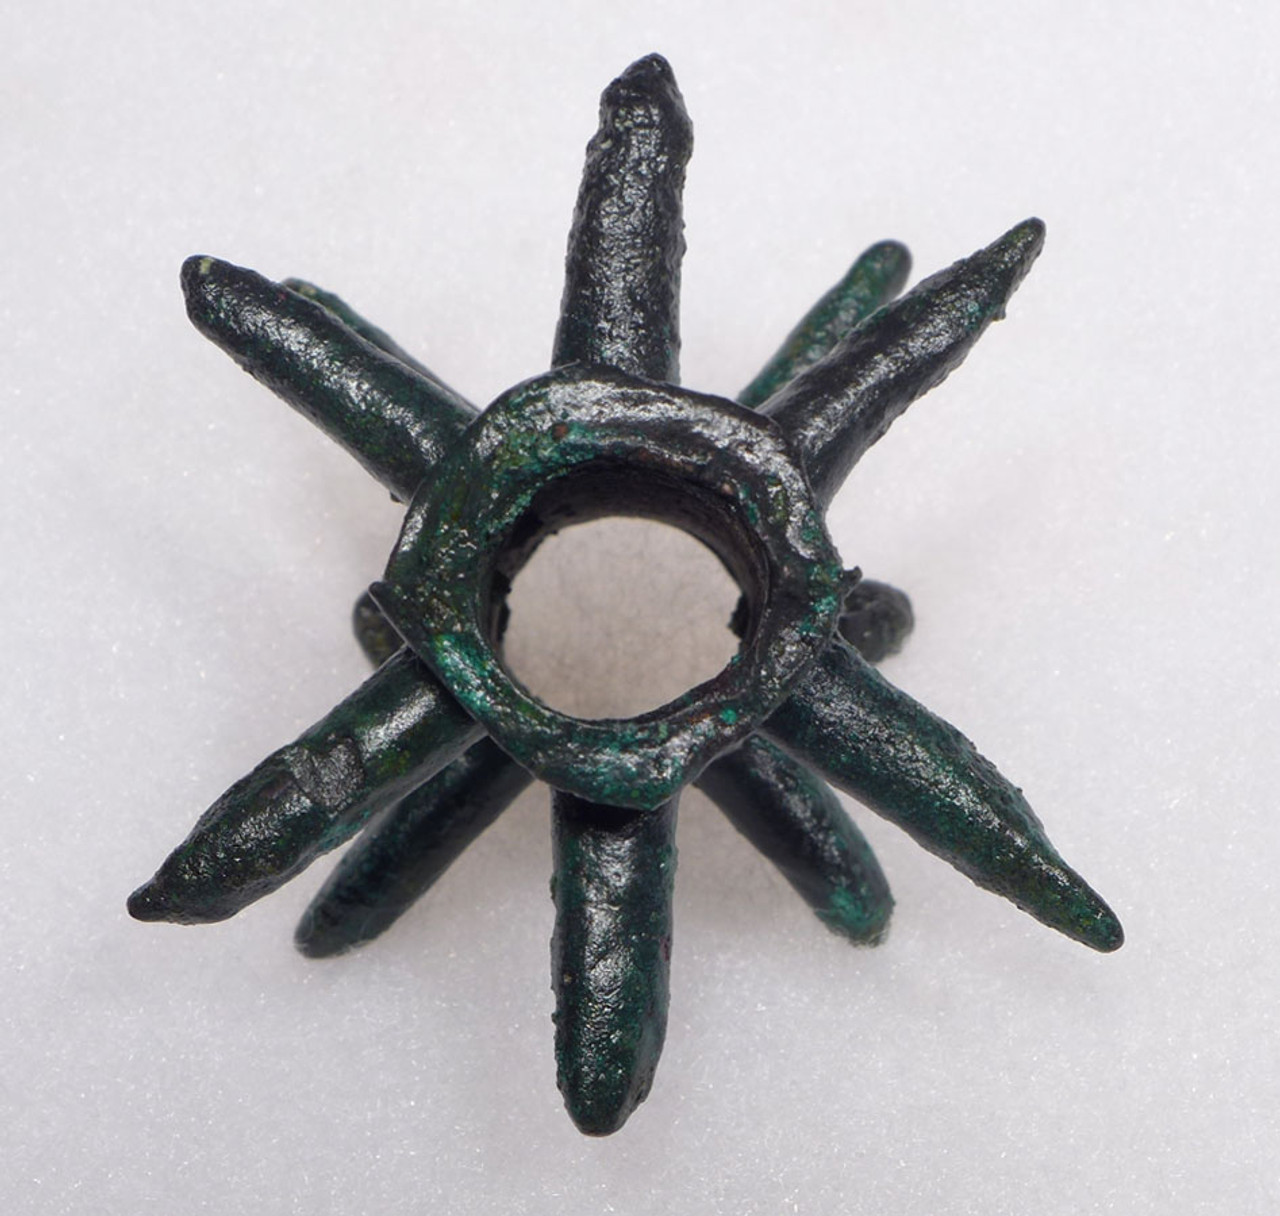 RARE ANCIENT BRONZE SPIKED DECORATIVE MACE HEAD FROM THE NEAR EAST *LUR115